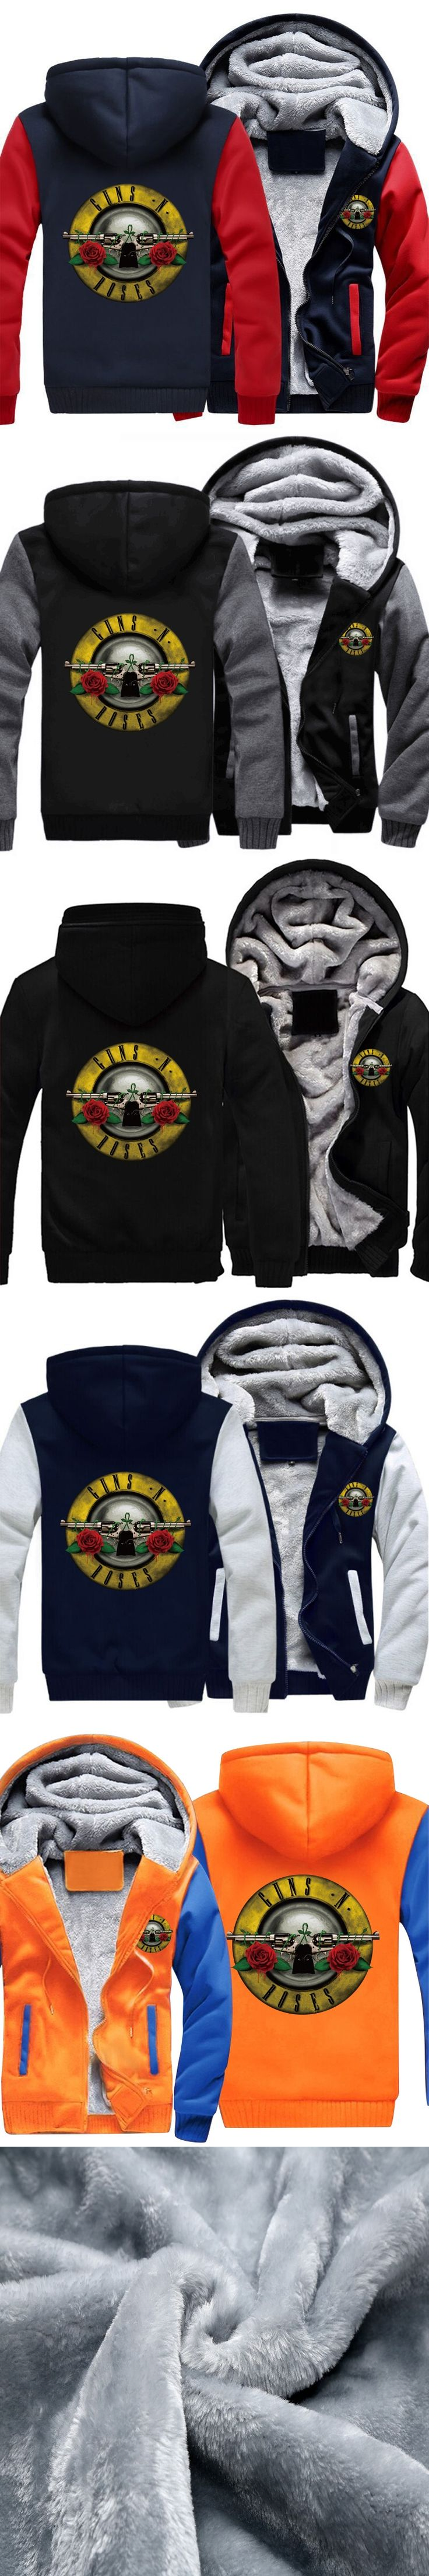 Winter Wool Liner Jacket Men's Cashmere  Guns N' Roses Thick Warm Coat Zipper Hoodie Hooded Cardigan Fleece Sweatshirts